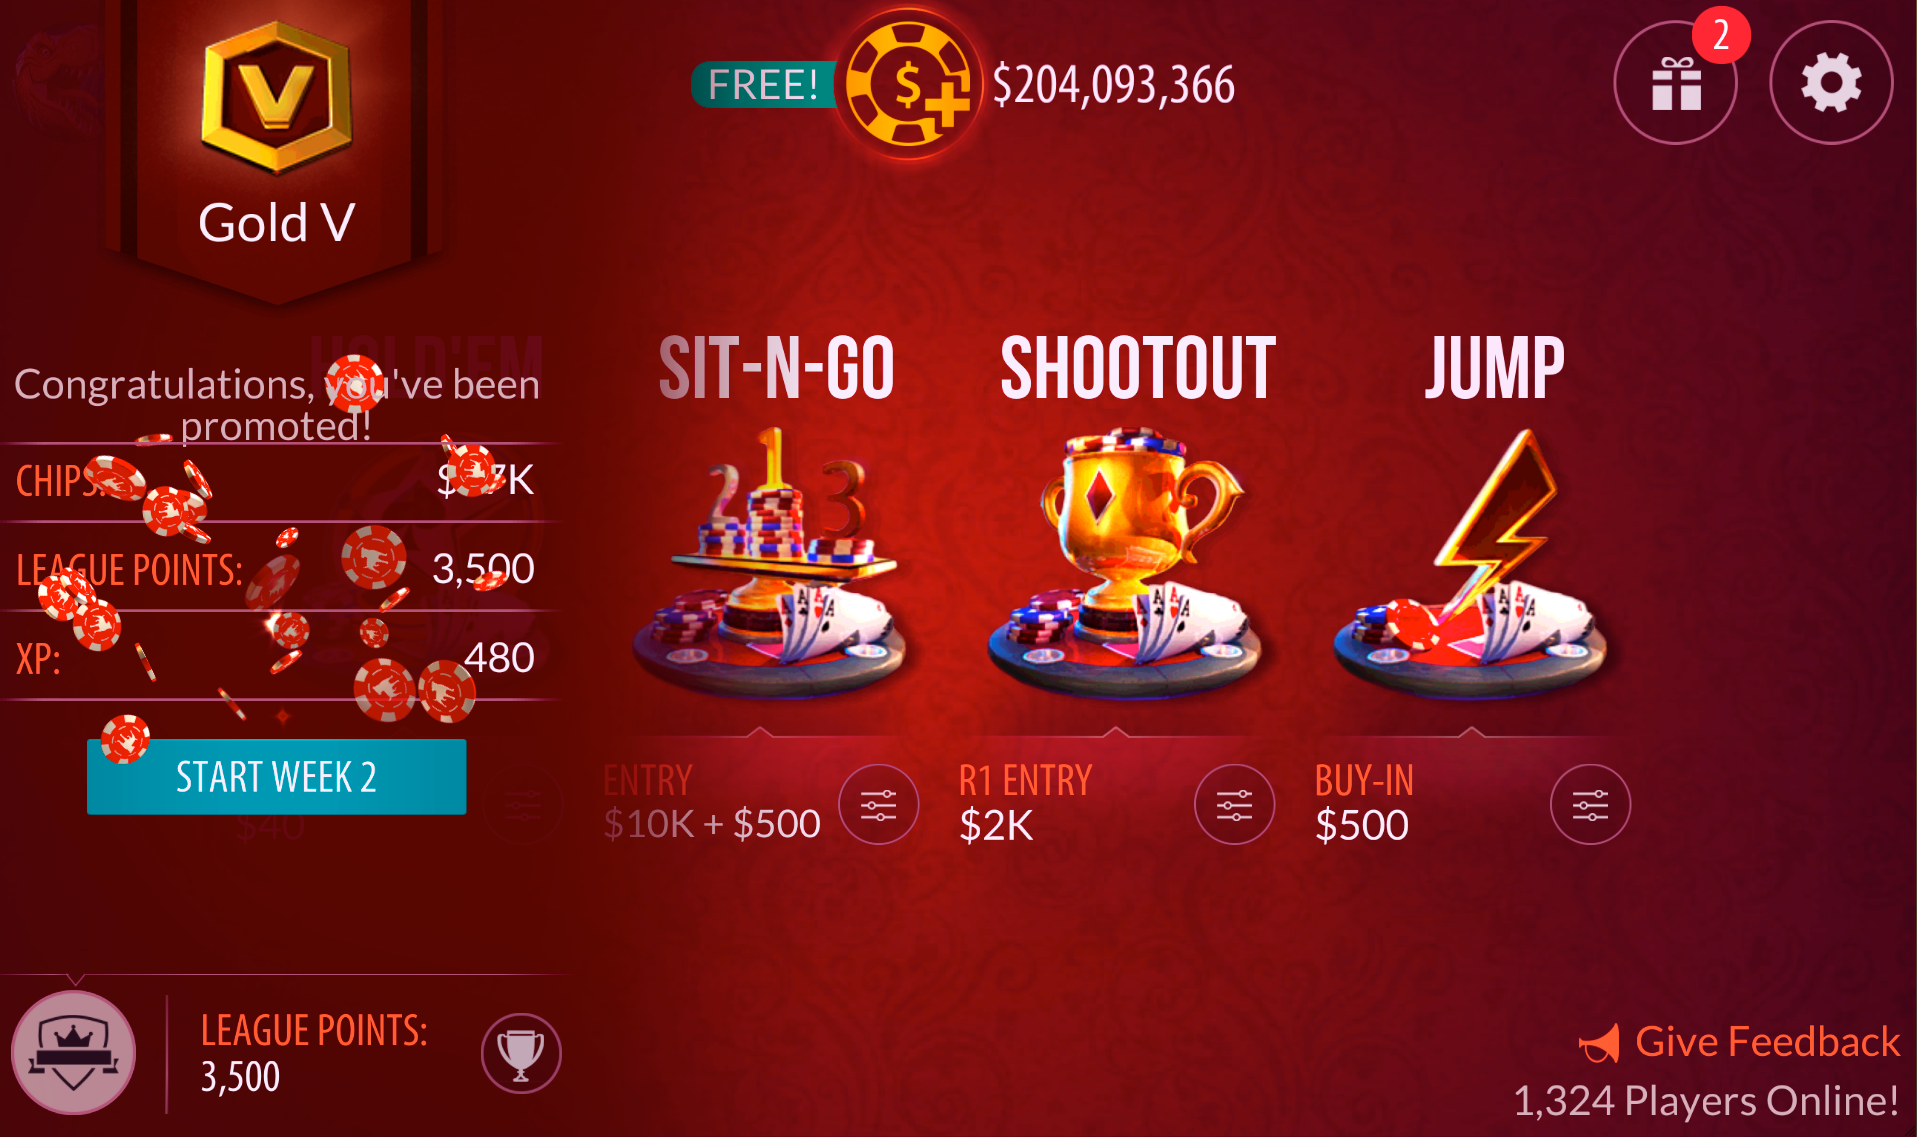 Splash 3 Casino